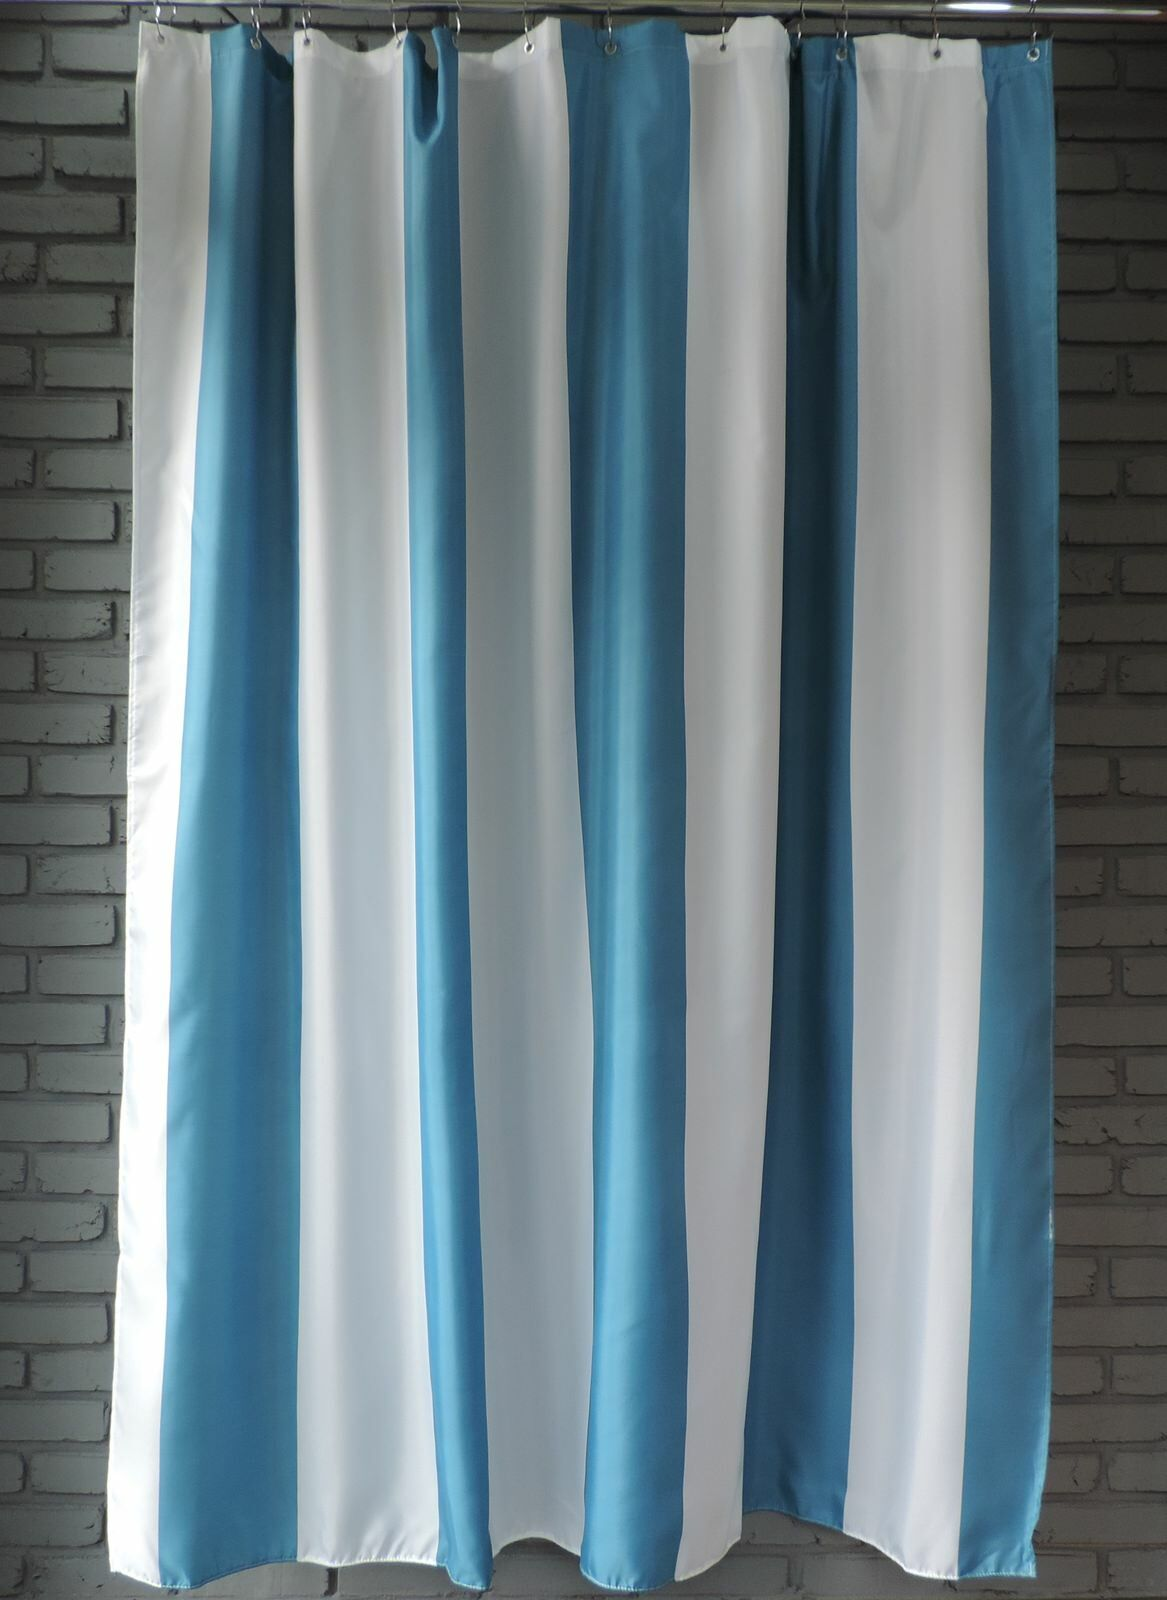 Extra Long Shower Curtain 72 X 78 Inch GAMMA Aqua Blue and White ...